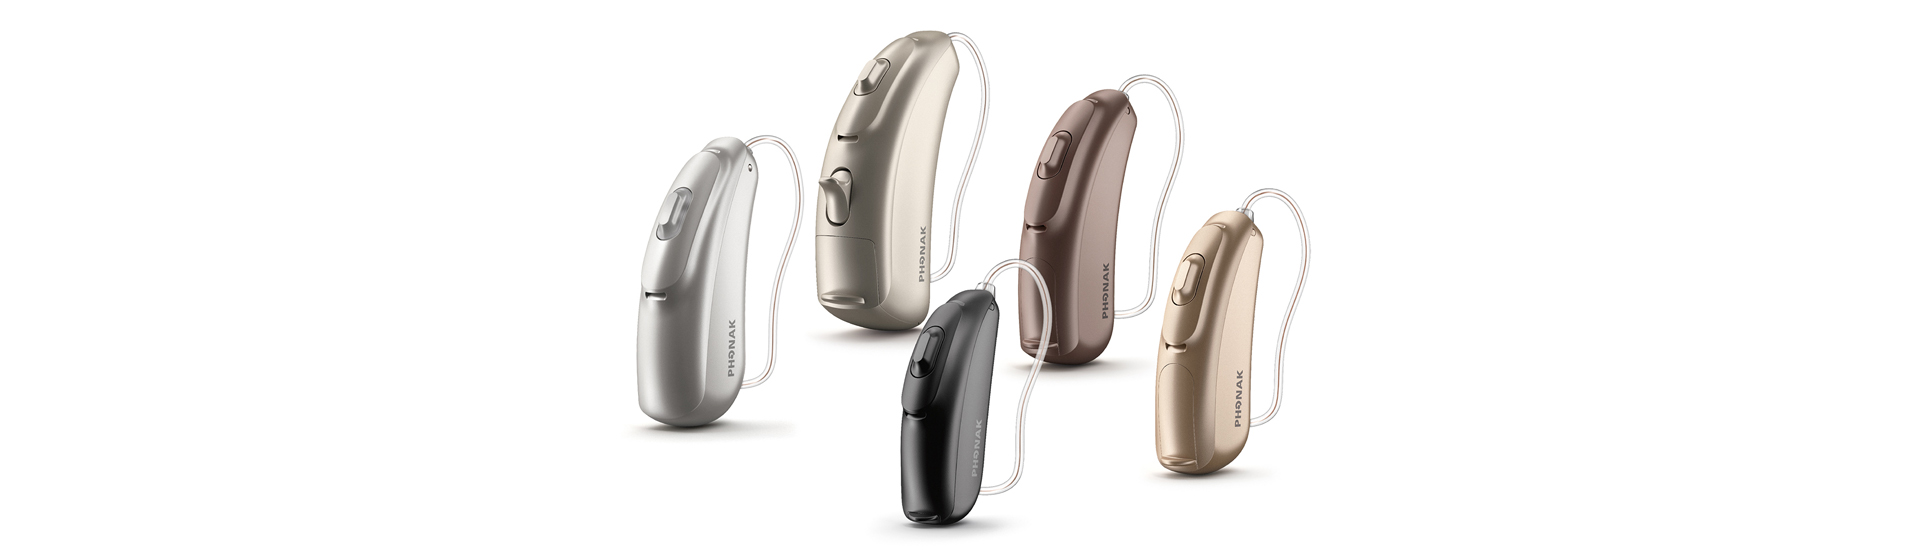 Hearing Aids Phonak